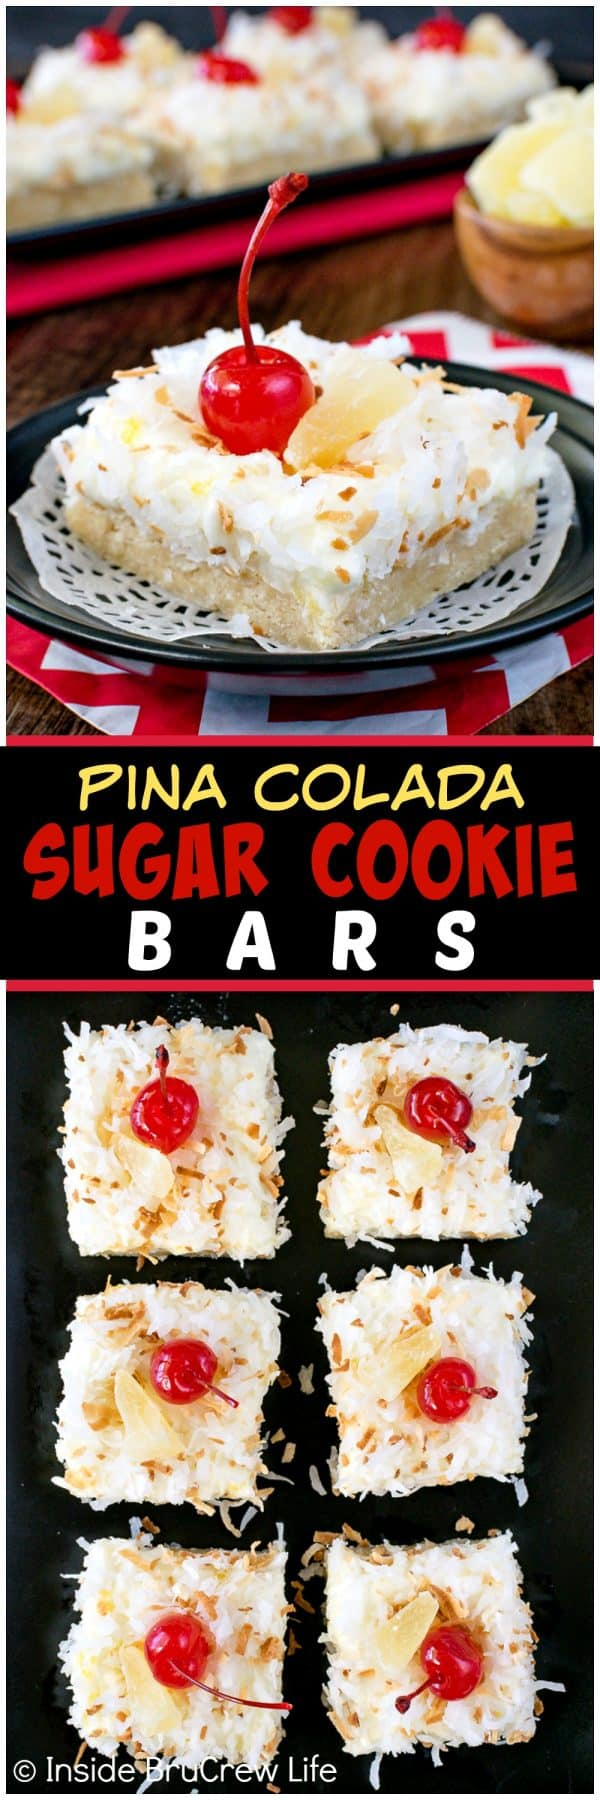 Pina Colada Sugar Cookie Bars - chewy coconut sugar cookie bars topped with a sweet pineapple frosting and more coconut. Make this easy recipe for summer parties and picnics. #sugarcookiebars #easy #dessert #frosting #pinacolada #pineapple #coconut #barcookies #bakesale